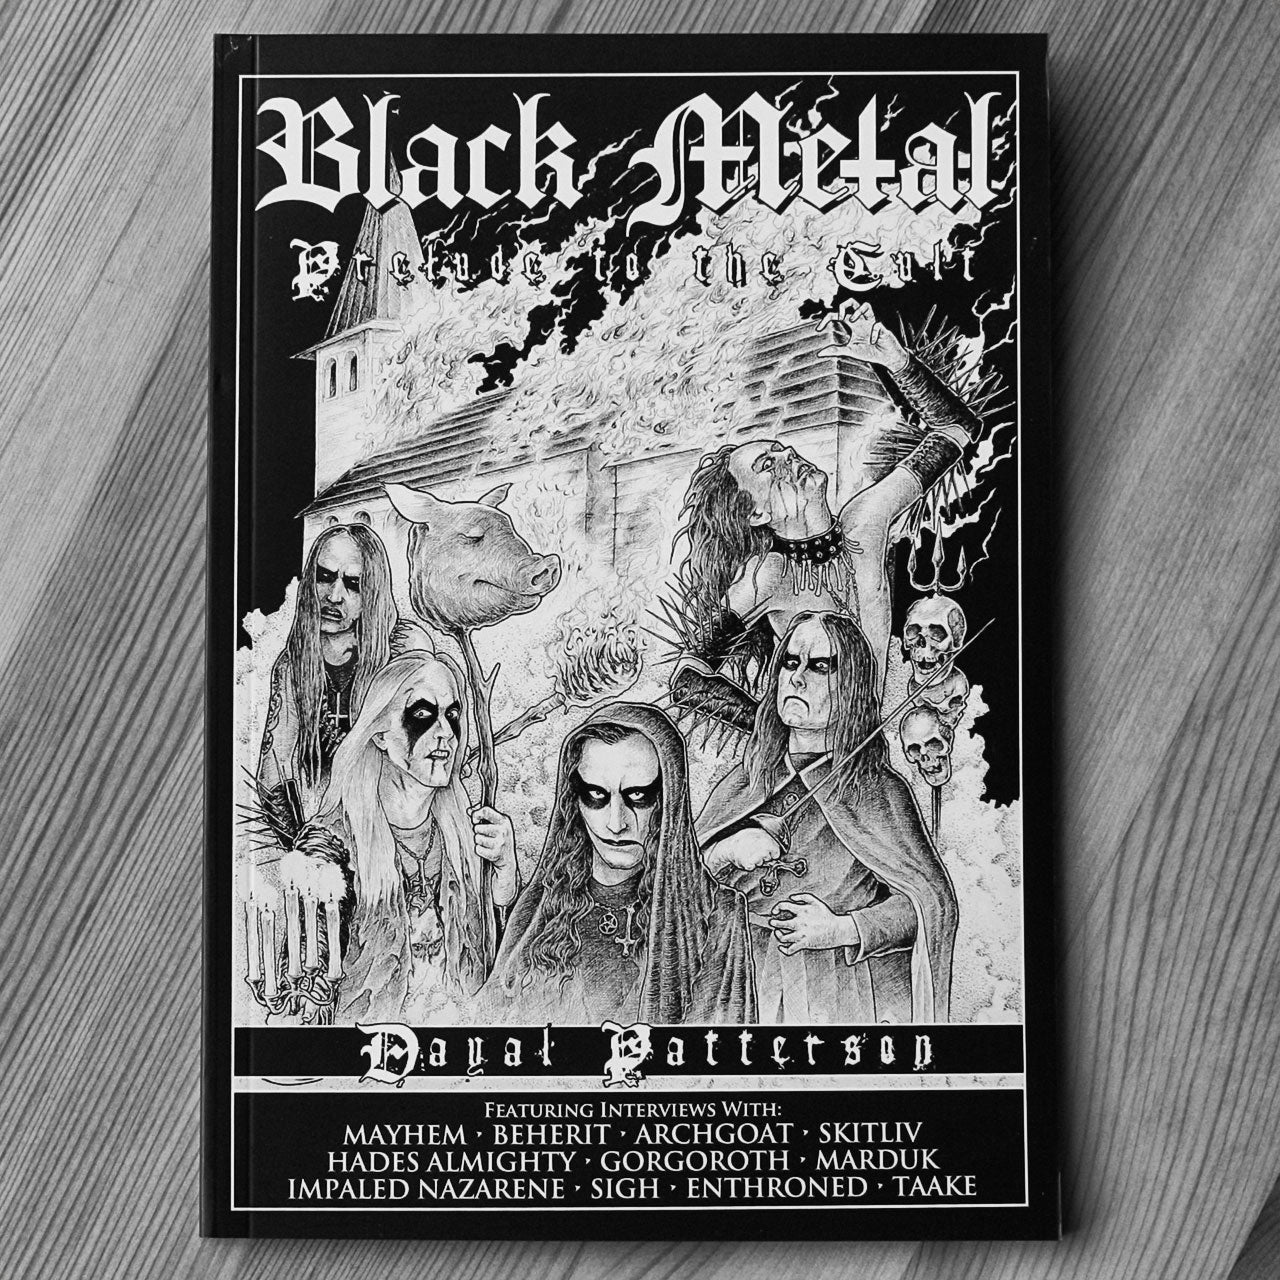 Black Metal: Prelude to the Cult (Paperback Book)